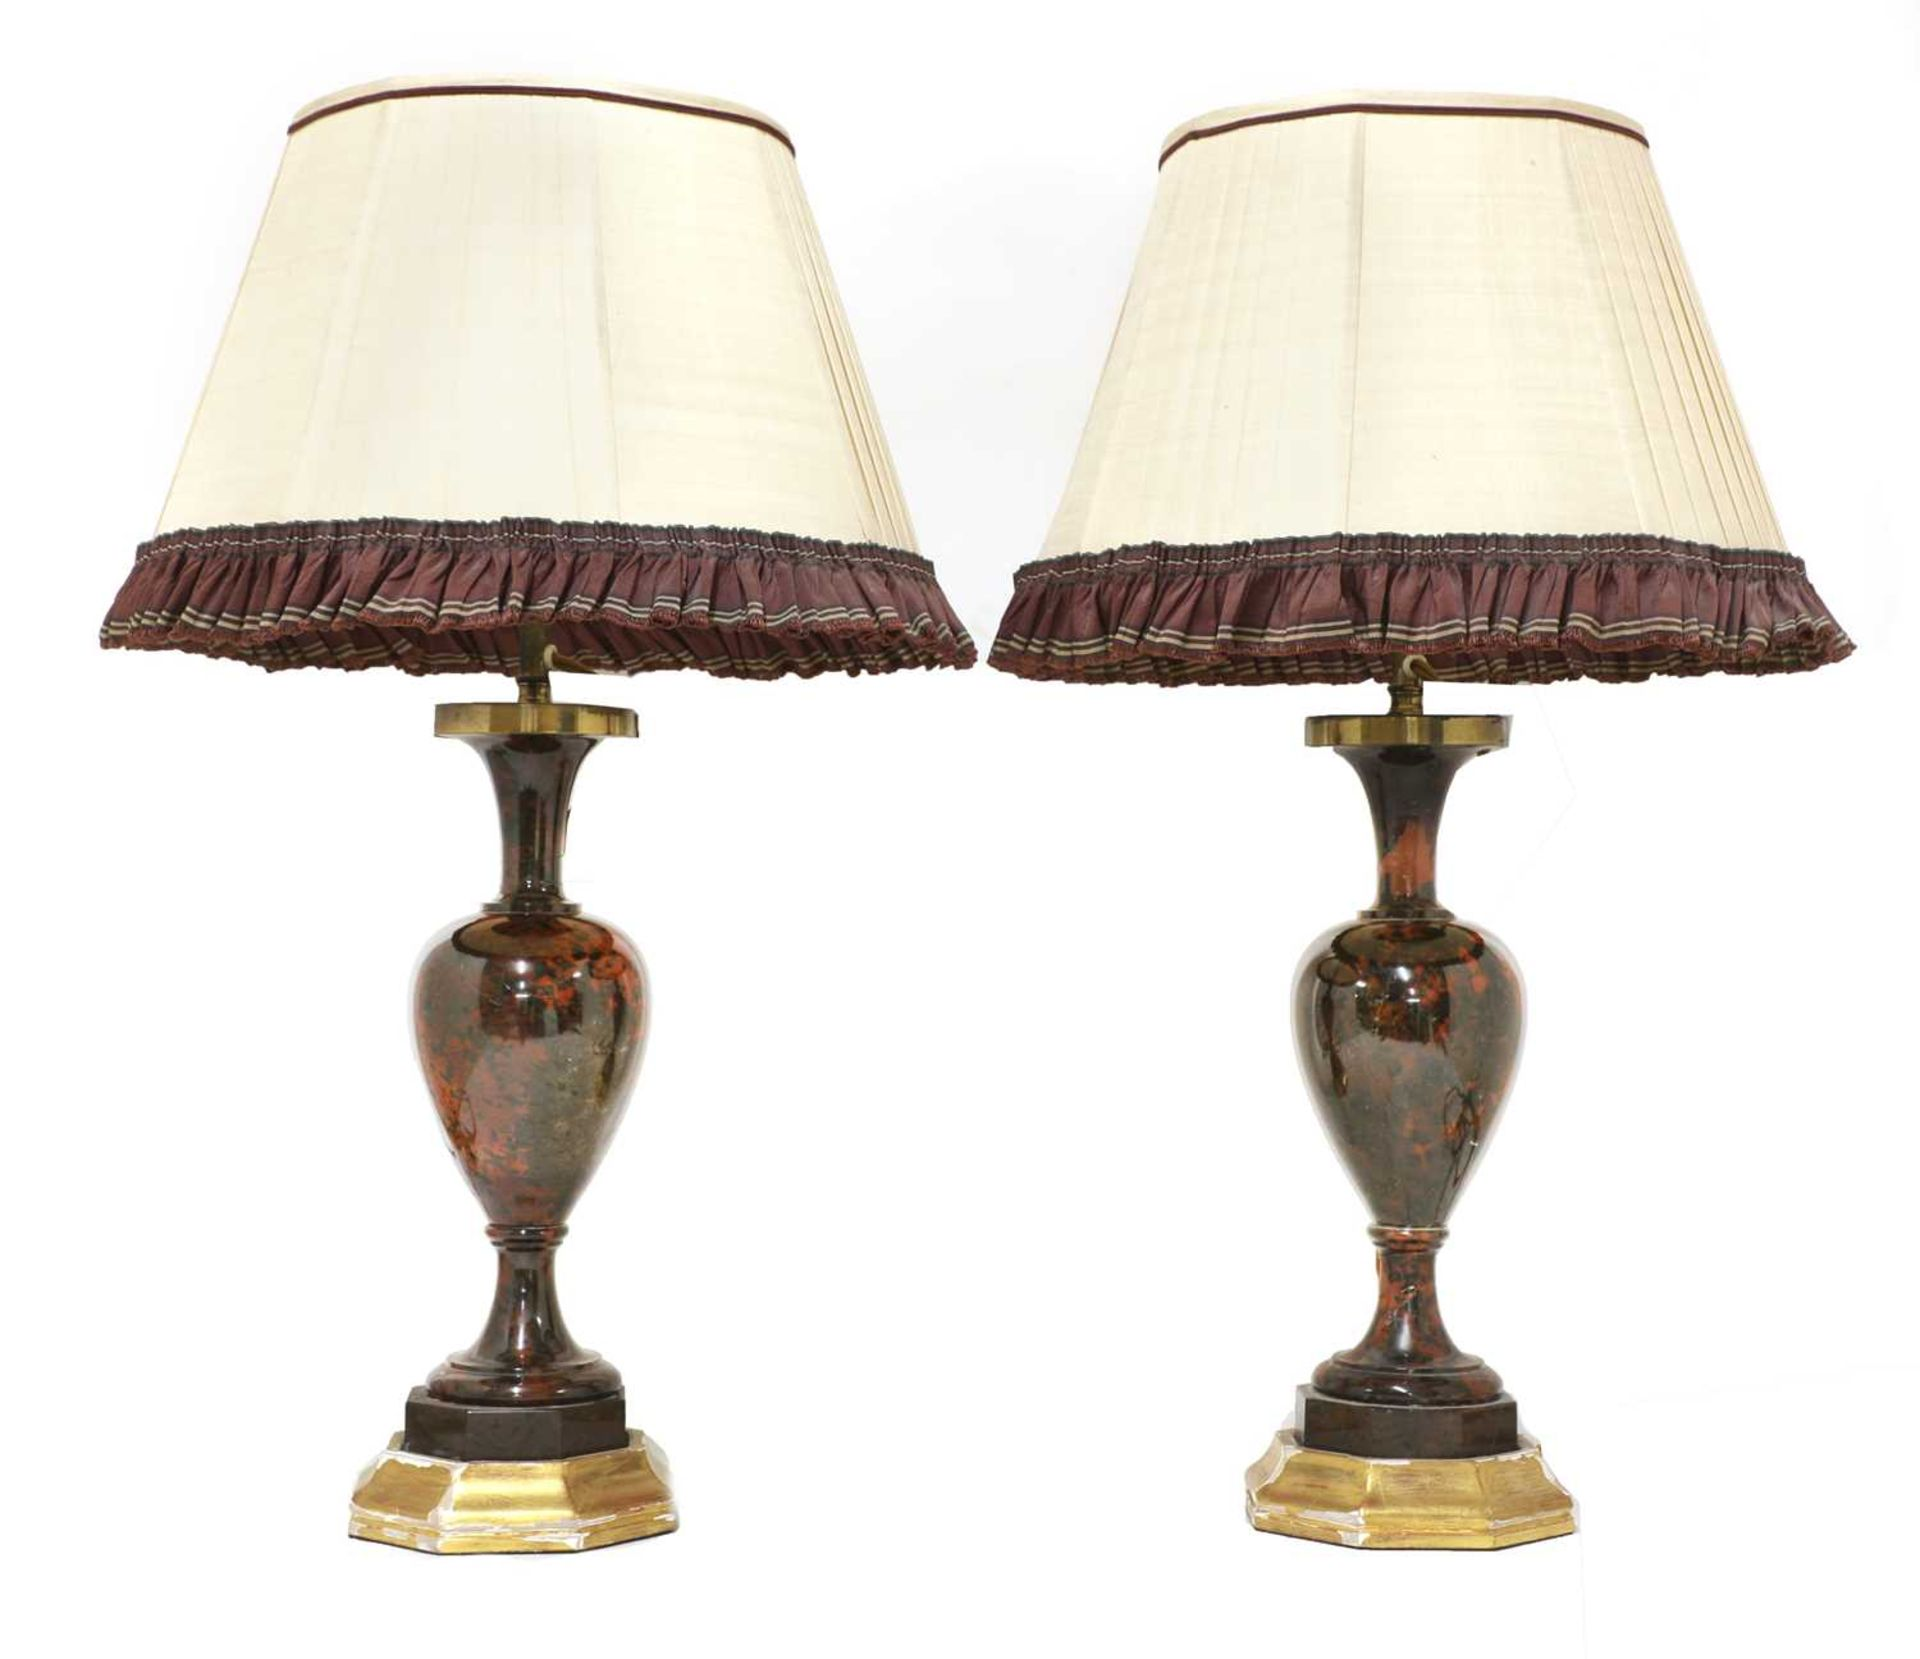 A pair of polished hardstone table lamps, - Image 2 of 3